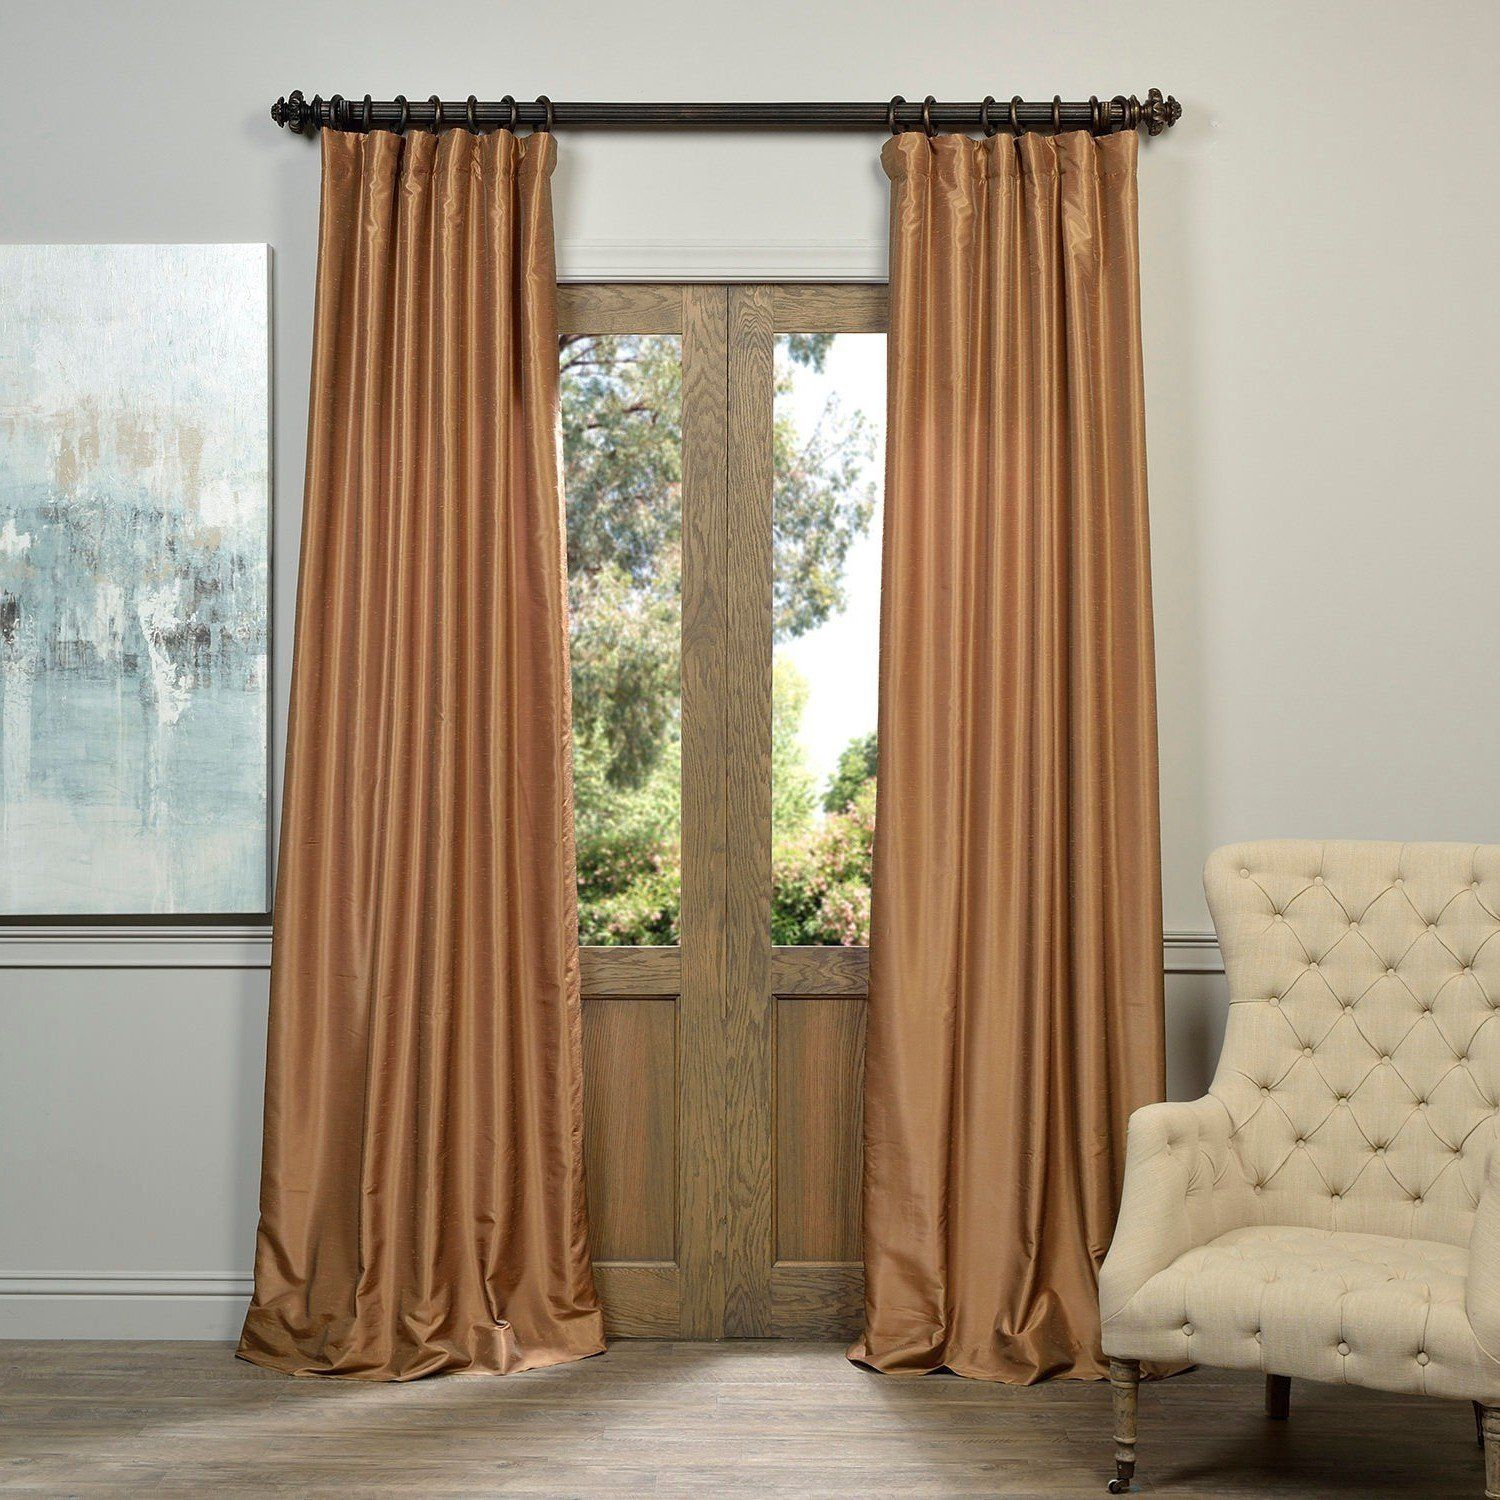 industrial you will drapes rail rods design curtains curved curtain like and window rod this double